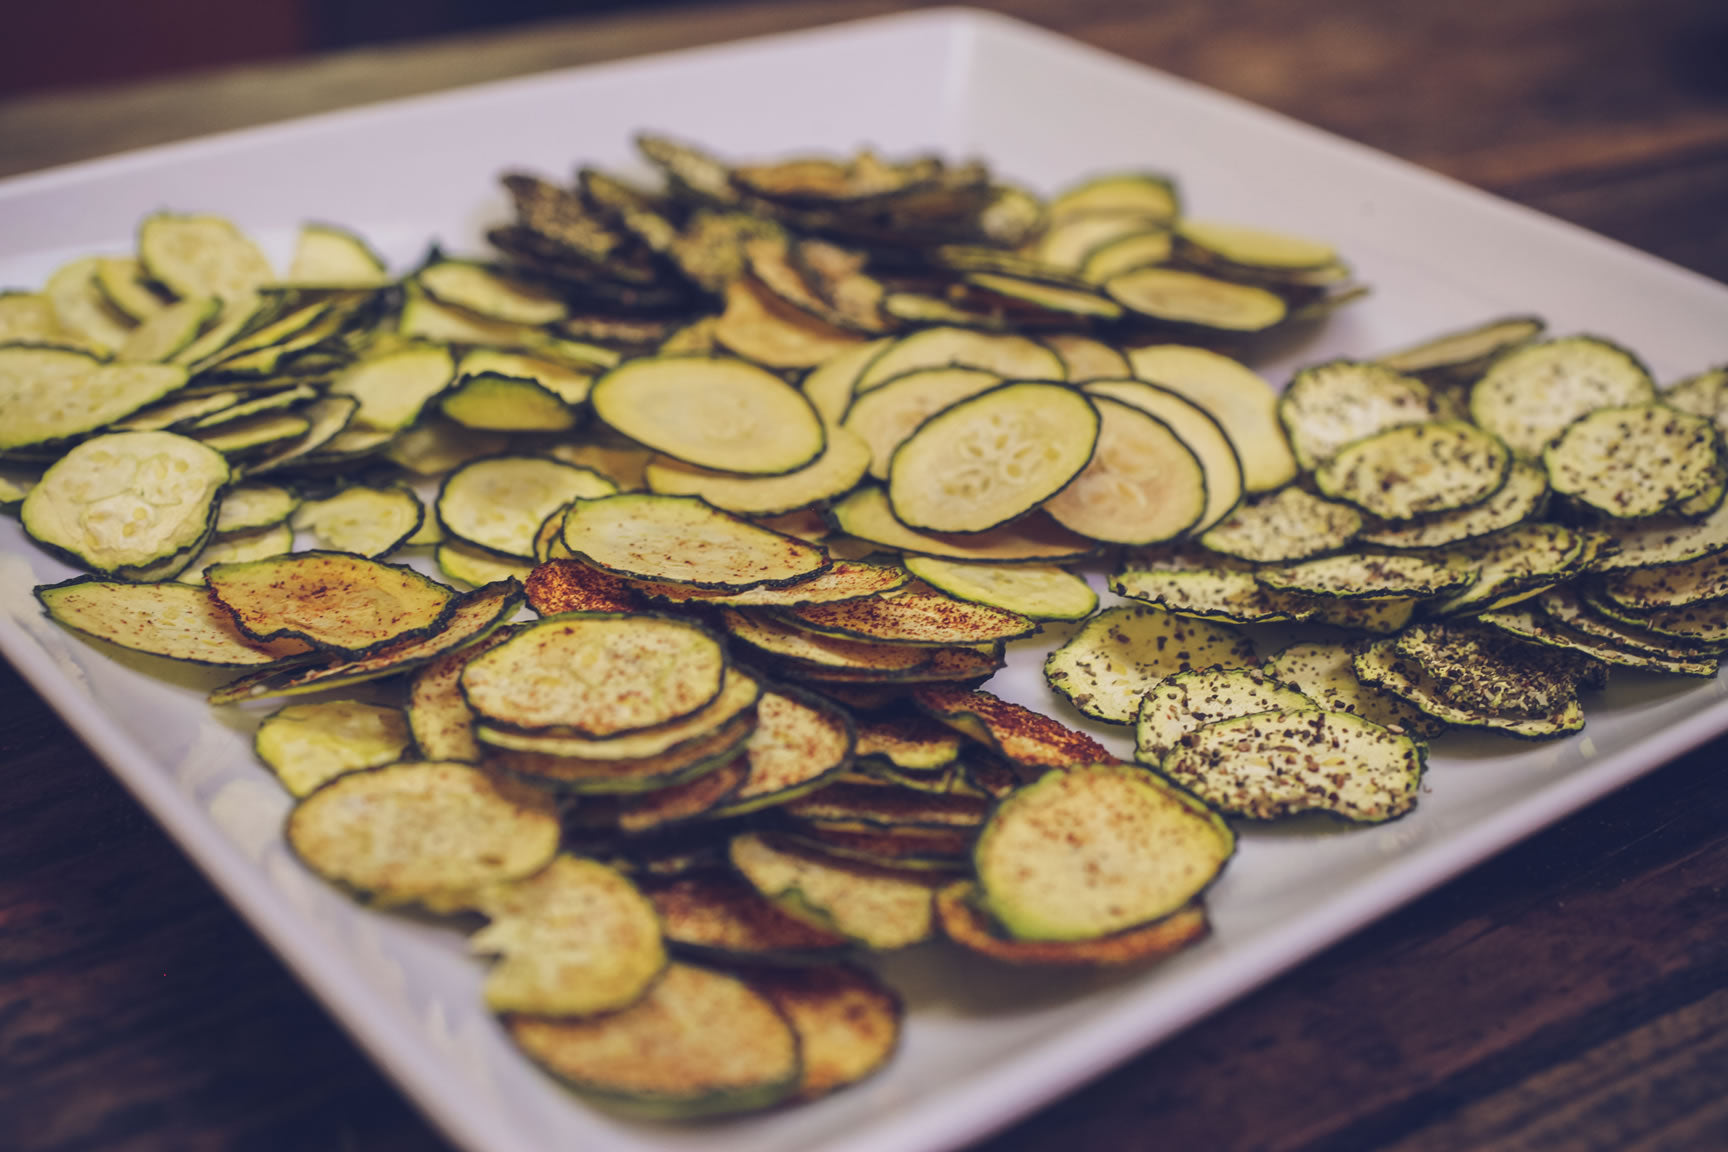 Zucchini chips recipe for food dehydrator mountain feed farm supply zucchini chips recipe for food dehydrator forumfinder Images